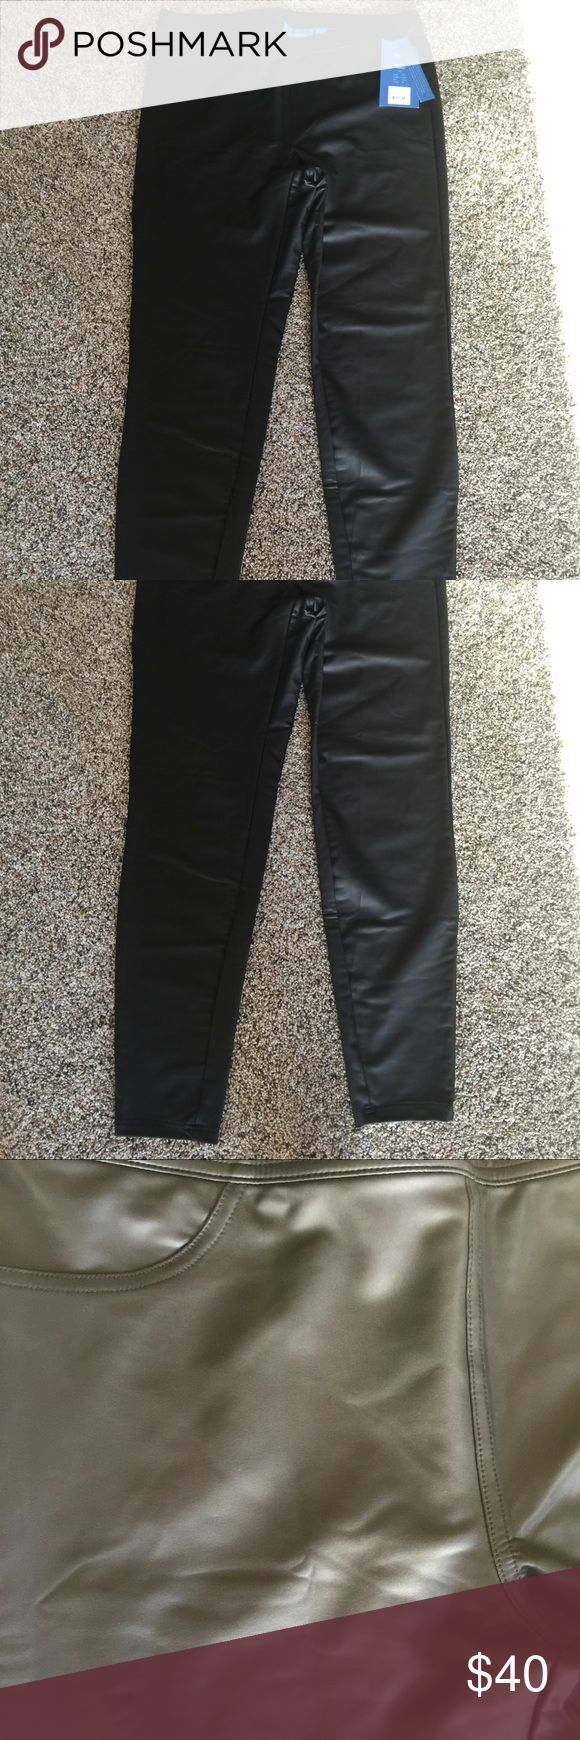 Simply Vera Vera Wang Large Faux Leather Leggings Simply Vera Vera Wang Large Faux Leather Leggings Simply Vera Vera Wang Pants Leggings